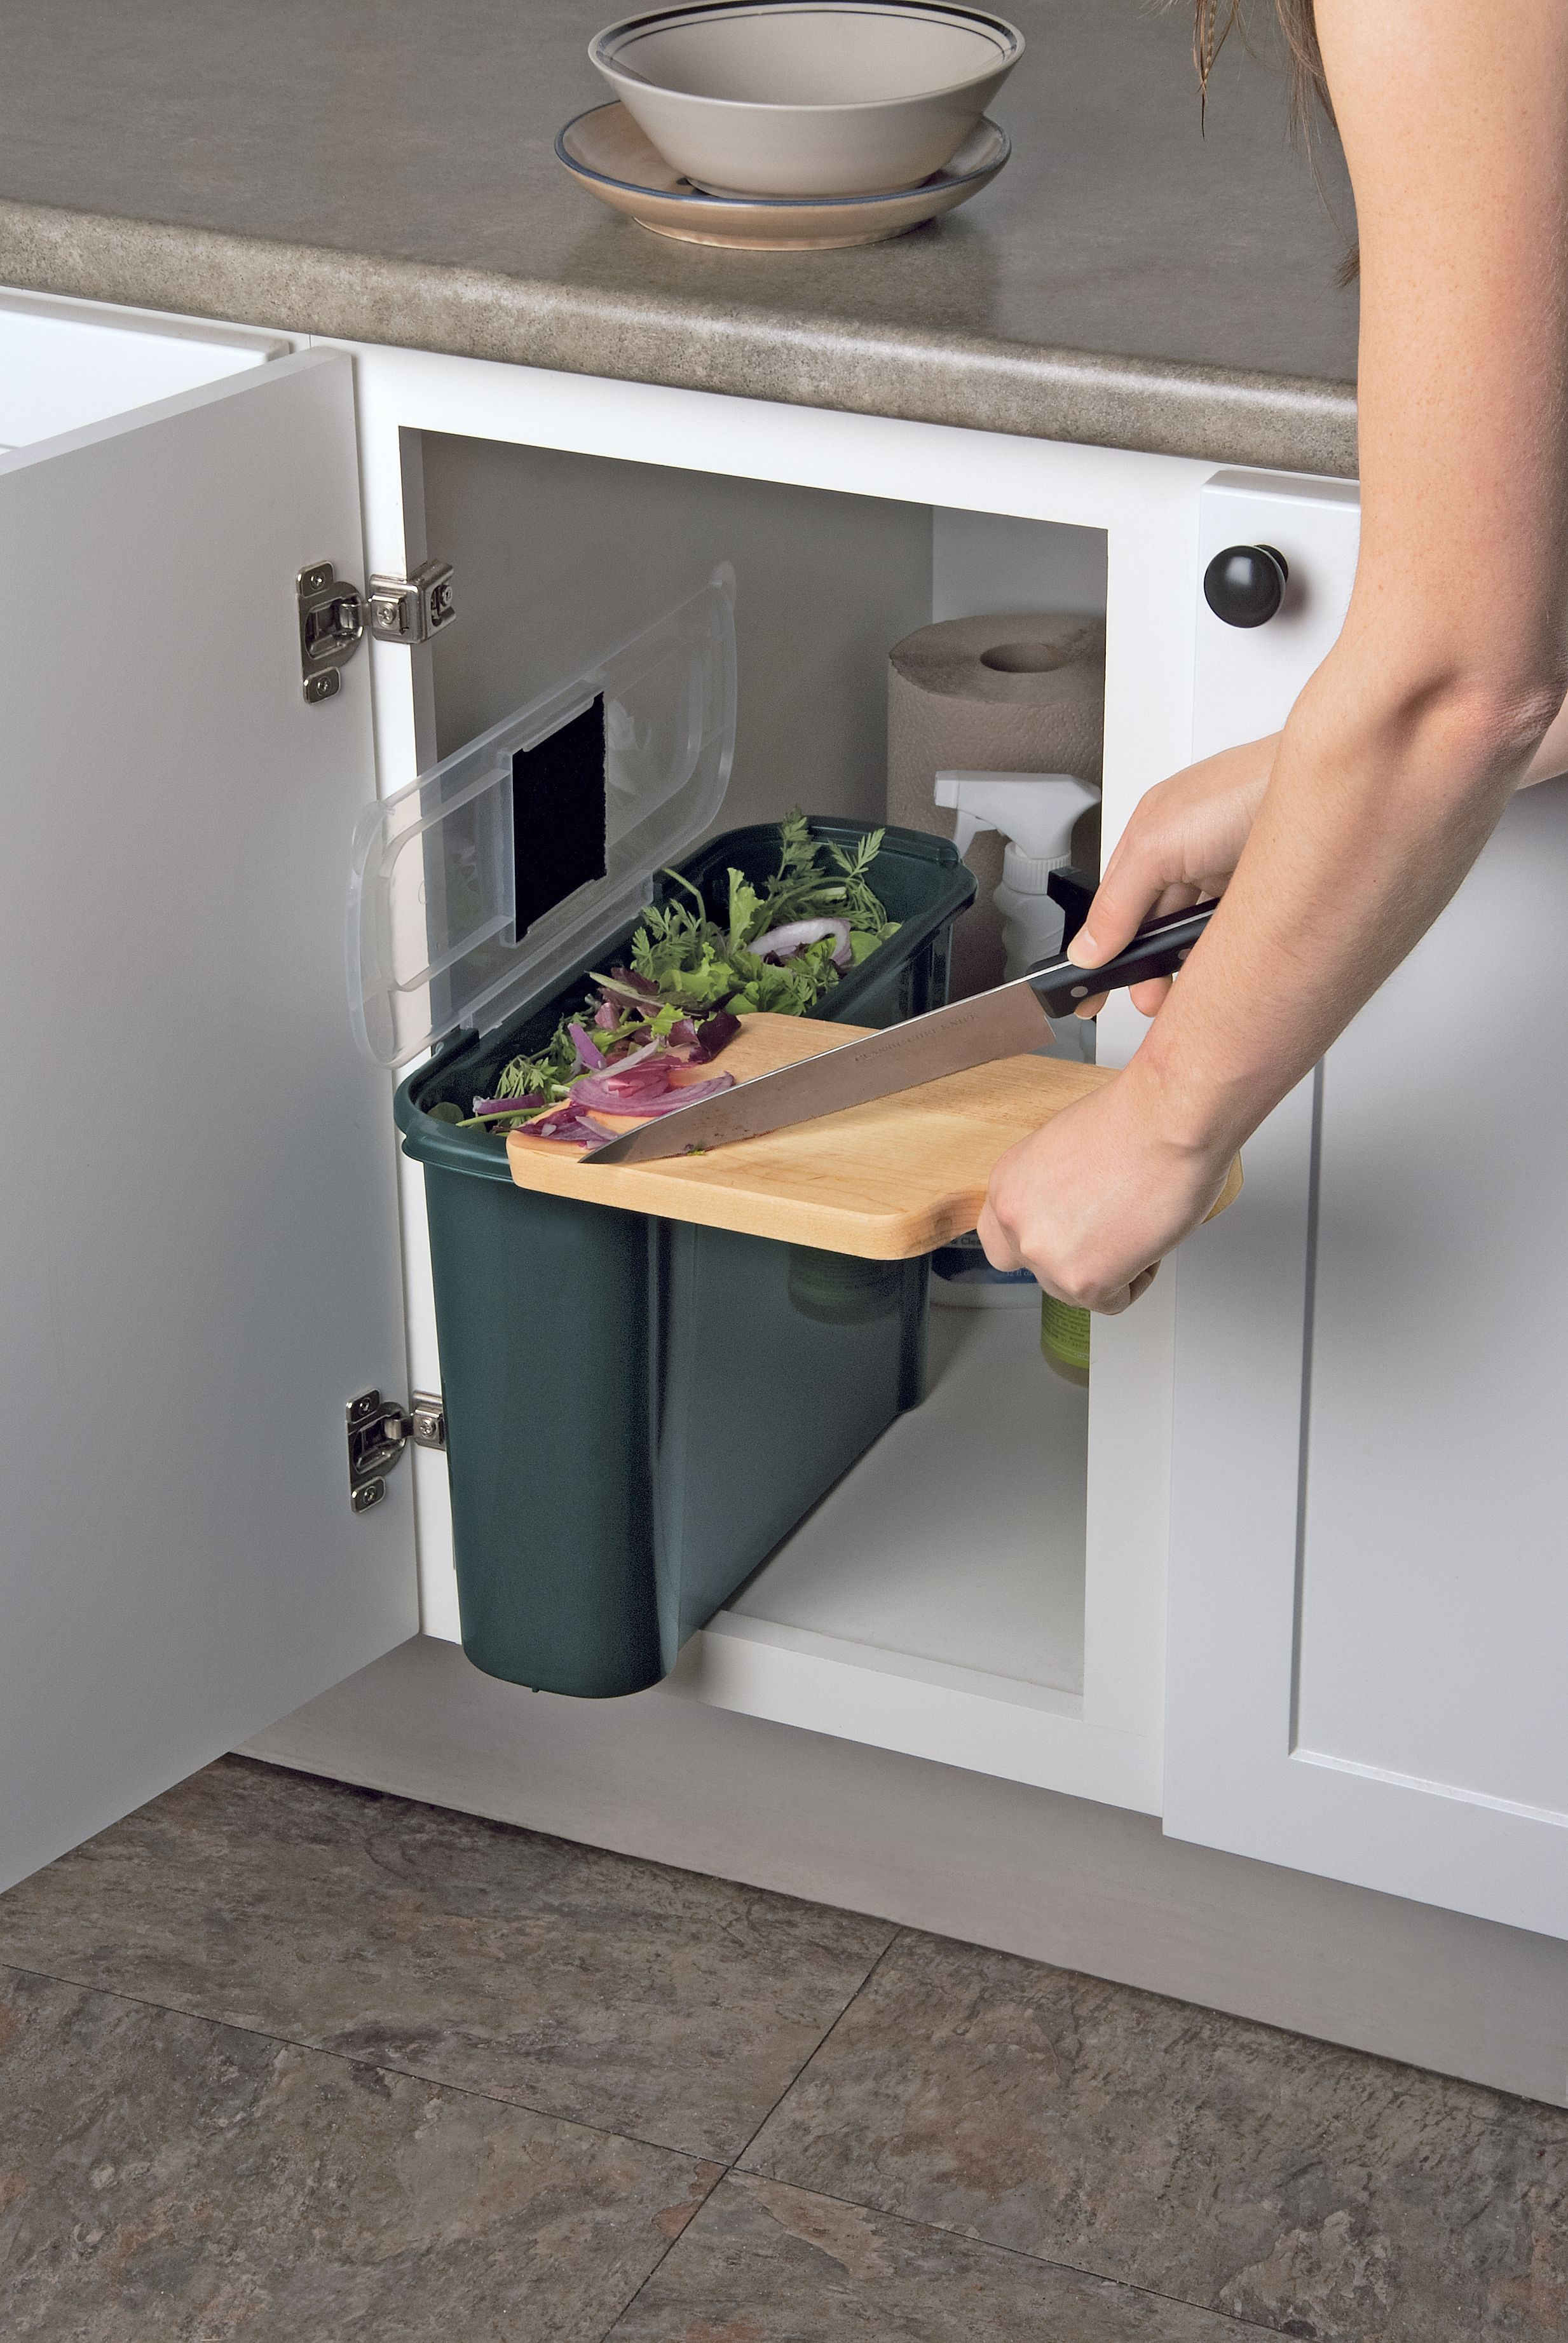 Indoor Composting Bin For Transferring To Outside Bin